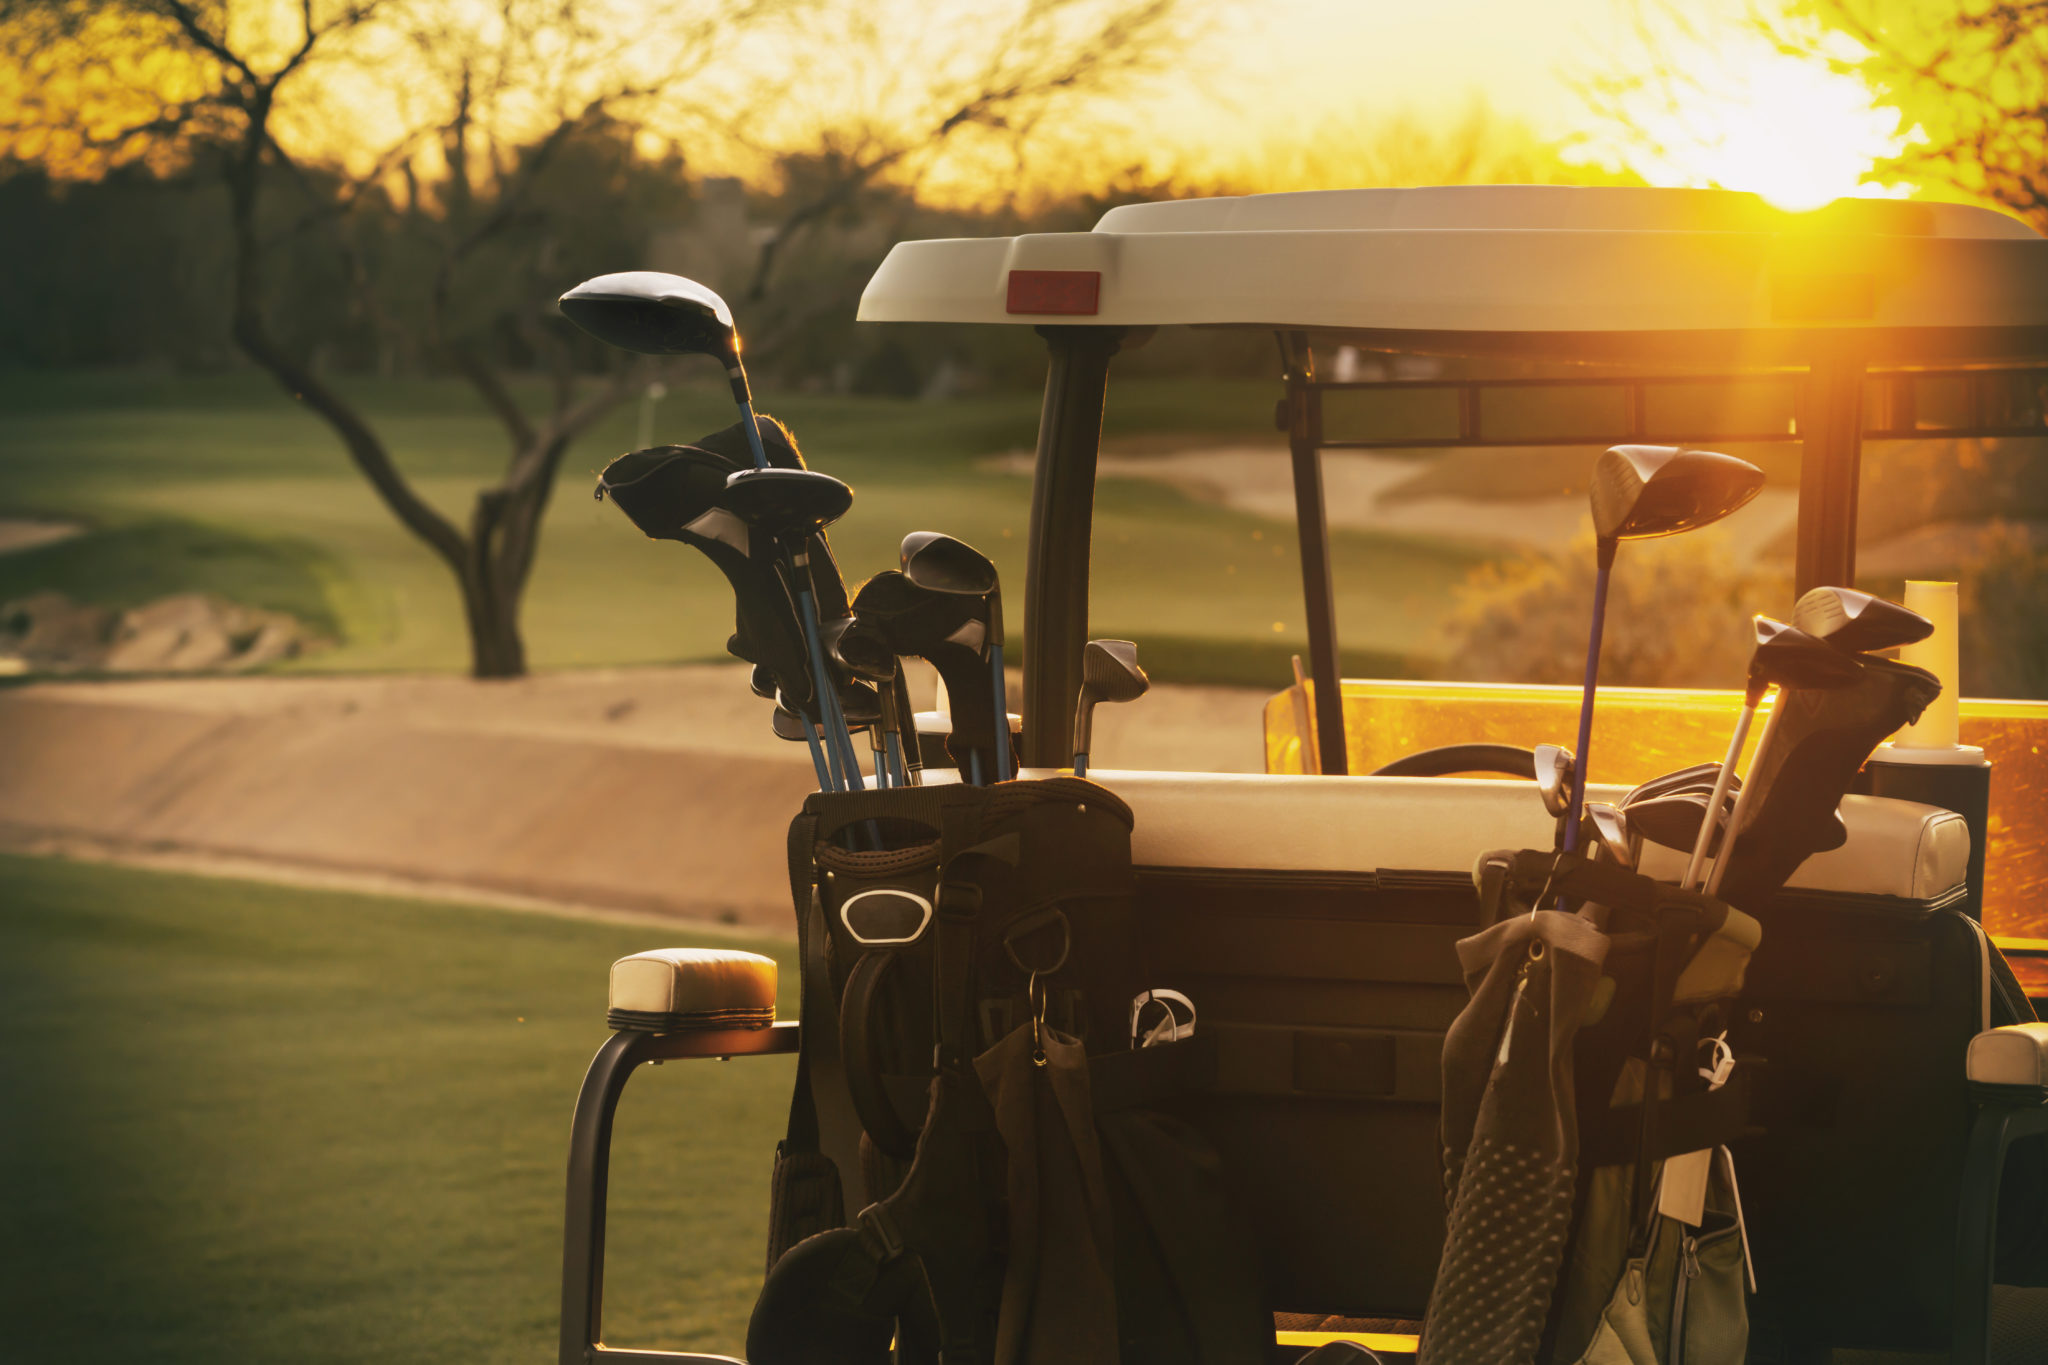 a golf cart with a bag of golf clubs sits empty on the golf course as the sun is rising